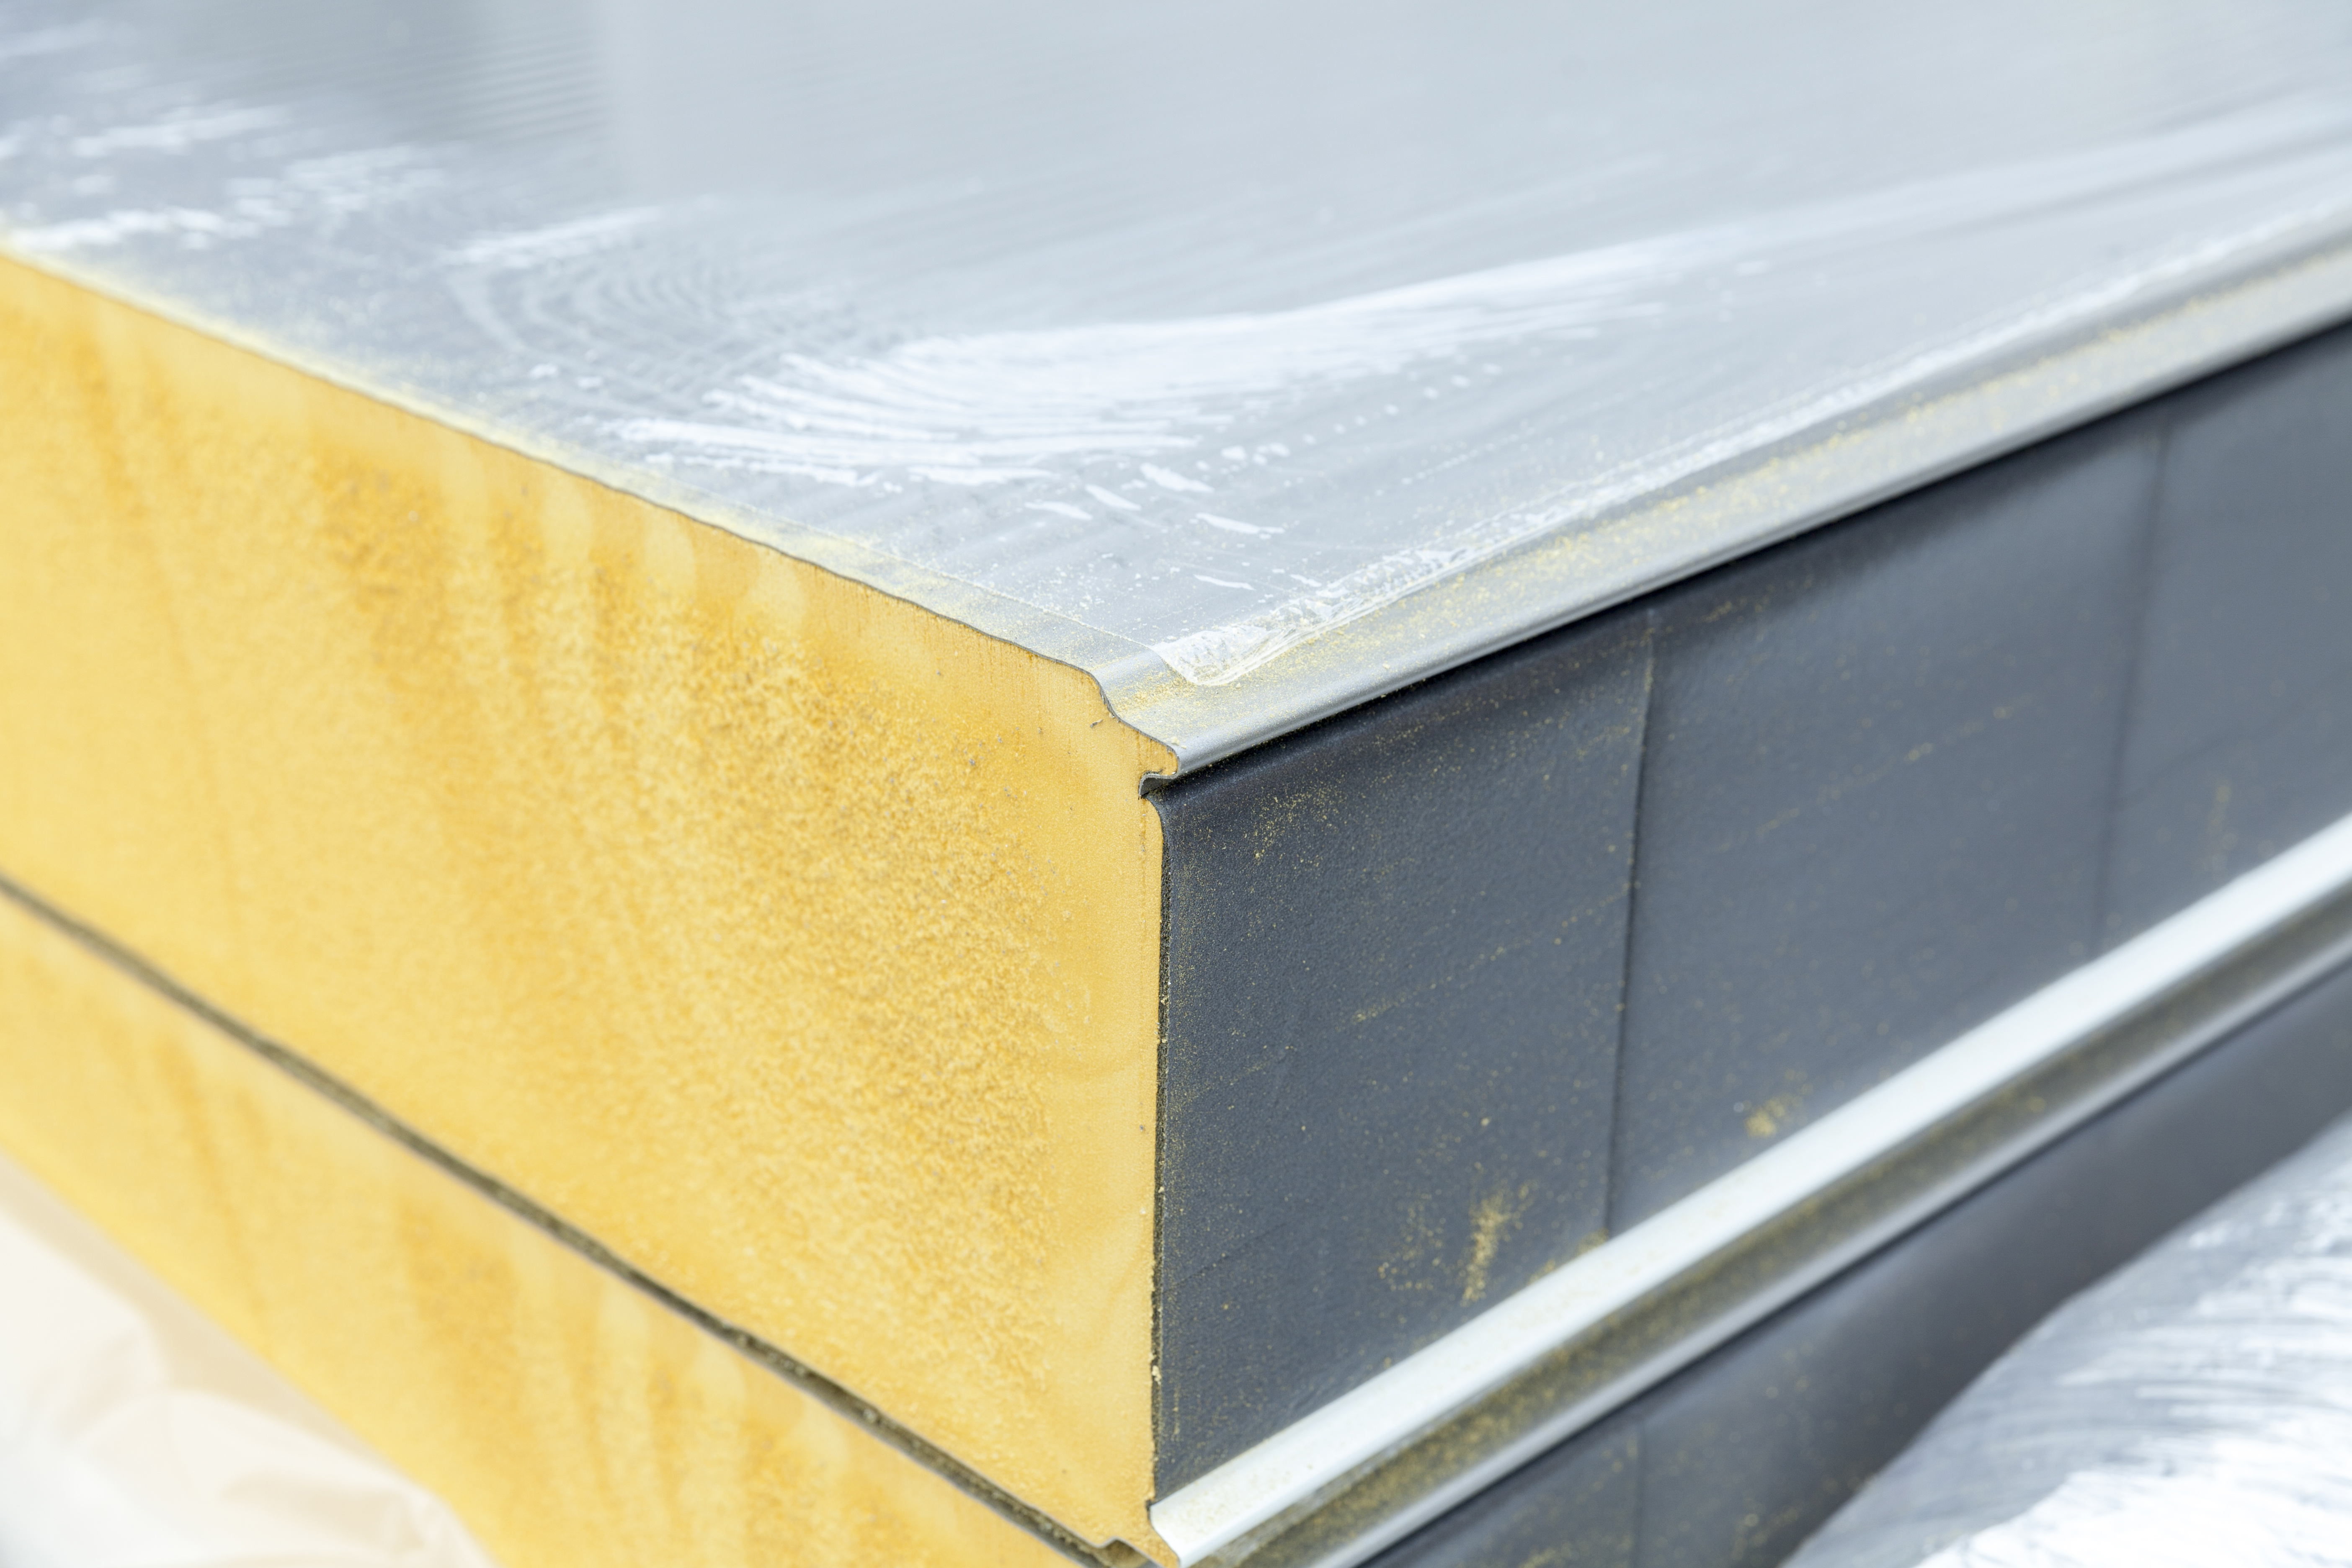 purchase of insulated sandwich panels, Insulated metal panels prices,